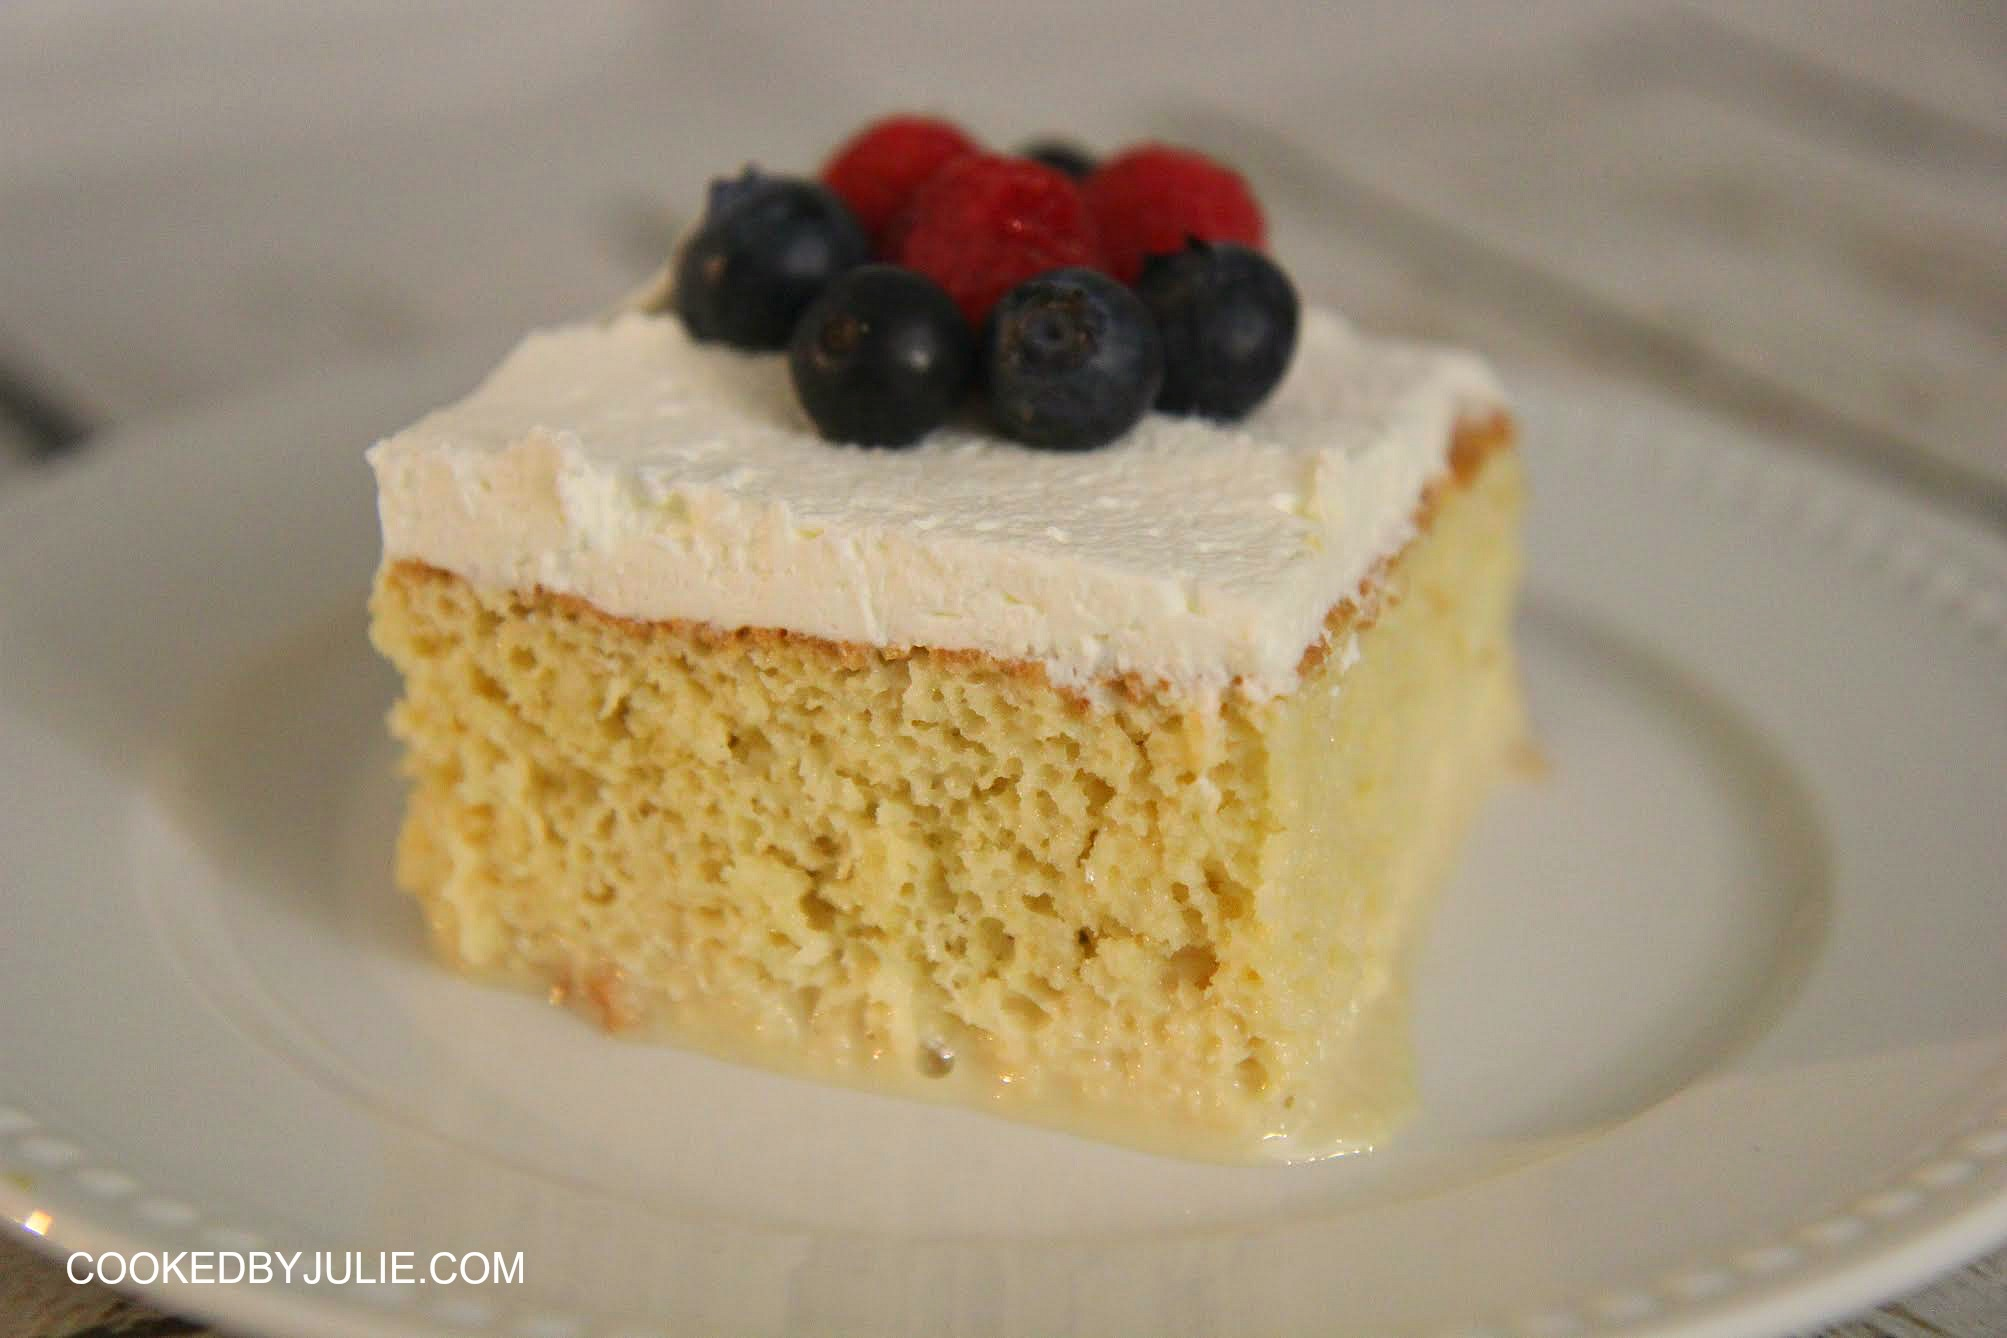 This decadent and moist pastel de tres leches cake is a perfectly sweet dessert! Serve with a whipped cream topping and fresh raspberries and blueberries.